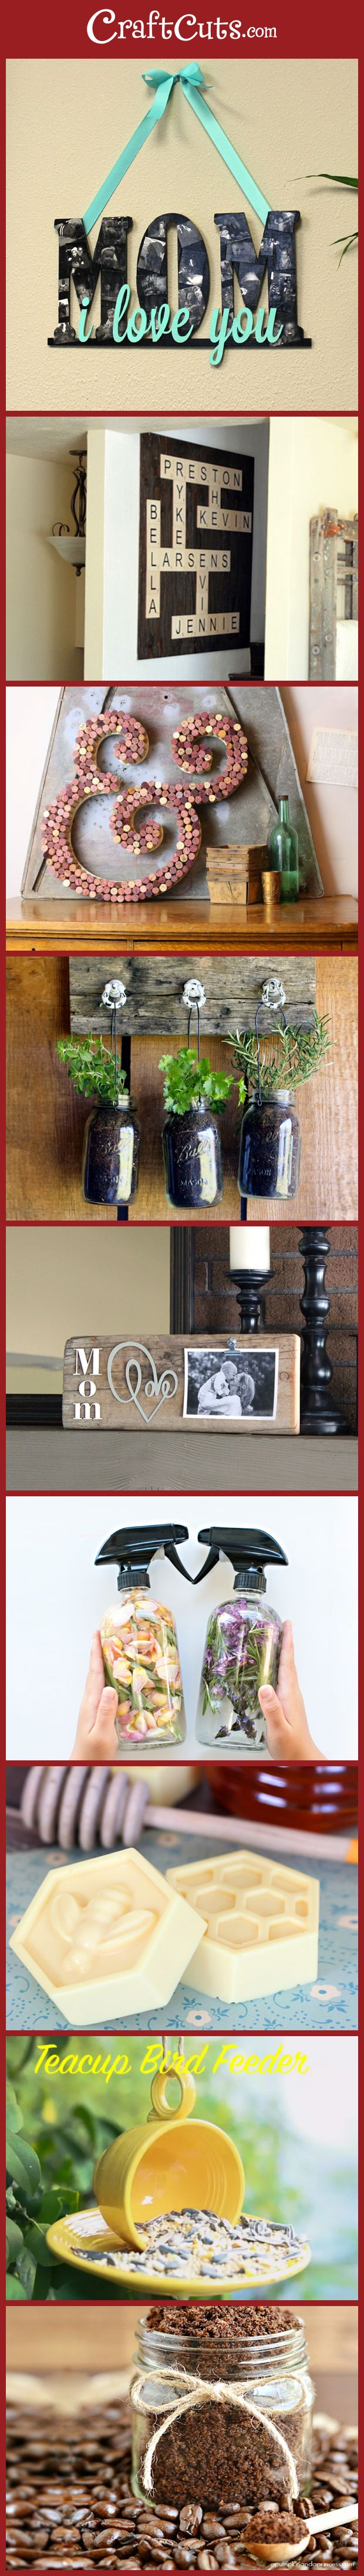 Simple DIY Gifts for Mother's Day! | Homemade Gifts for Mom | CraftCuts.com